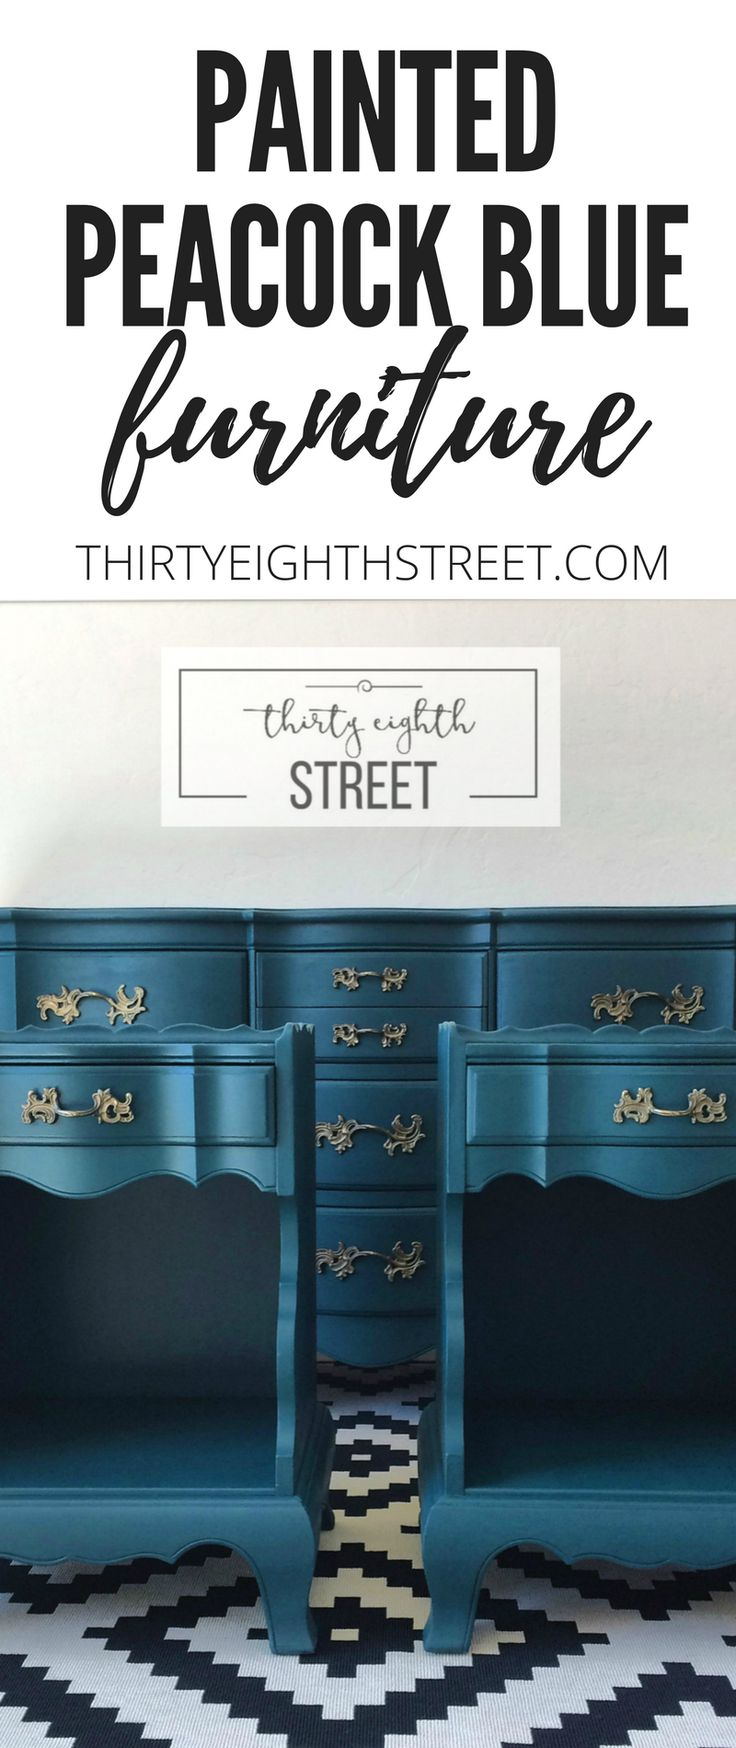 Learn how to update and paint your furniture! Painted Furniture Ideas and Inspiration! Peacock Blue Furniture Ideas. Bedroom Furniture Ideas. Chalk Painted Bedroom Ideas. Blue Painted Furniture. Peacock Blue Dresser. Peacock Blue Nightstands. Prettiest Peacock Blue Furniture! #peacockblue #paintedfurniture #diybedroom #frenchprovincial #furnituremakeovers